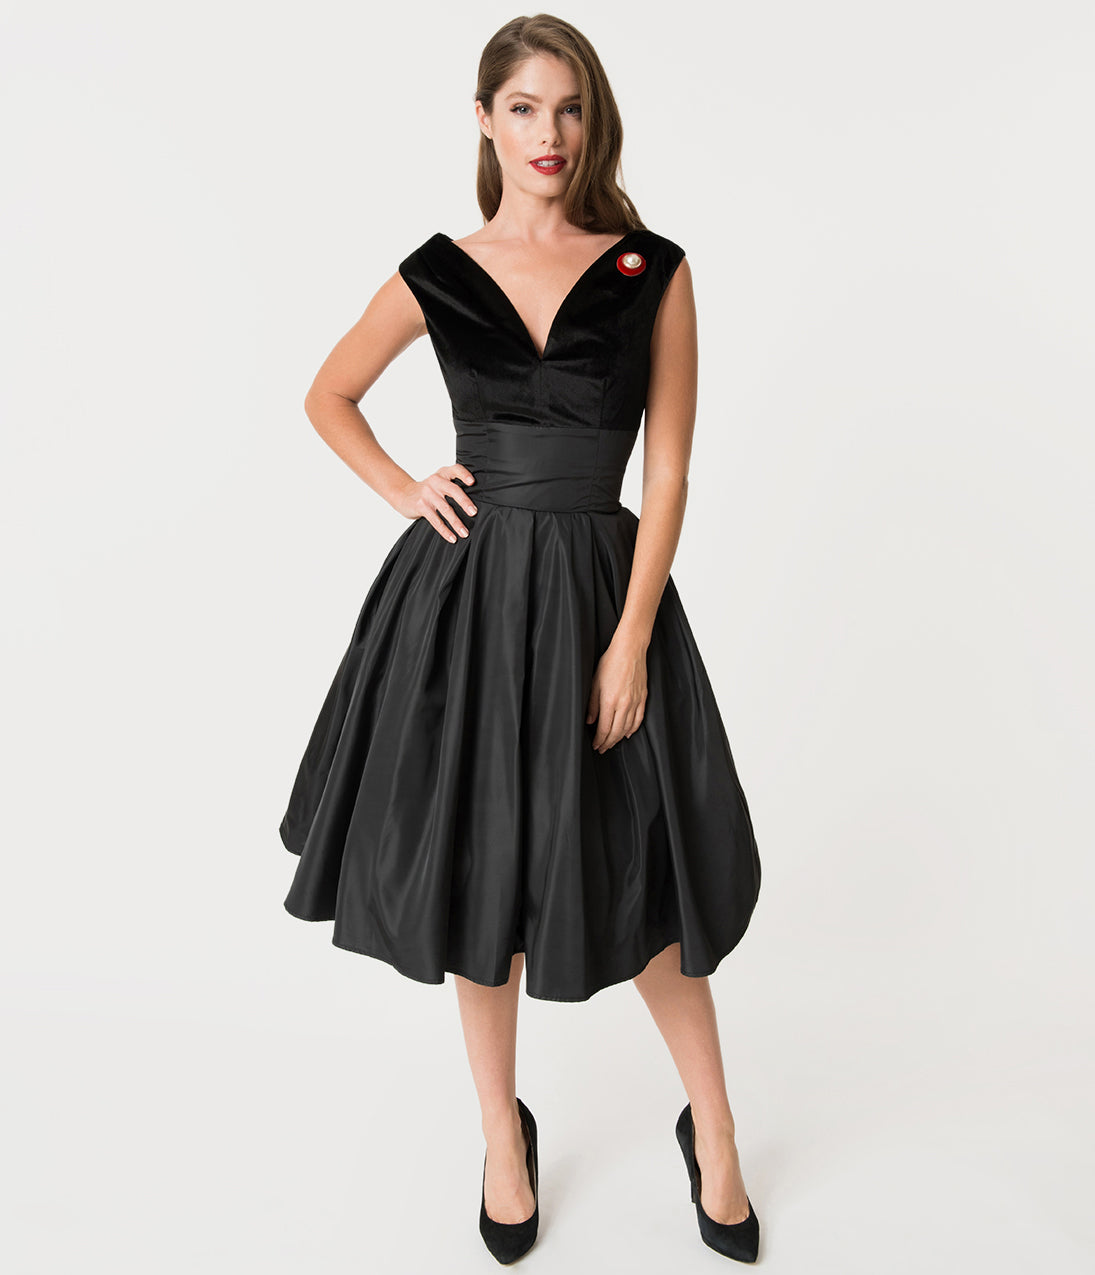 Vintage New Years Eve Dresses – Vintage Inspired Styles Unique Vintage 1950S Style Black Velvet  Taffeta Evie Swing Dress $74.00 AT vintagedancer.com